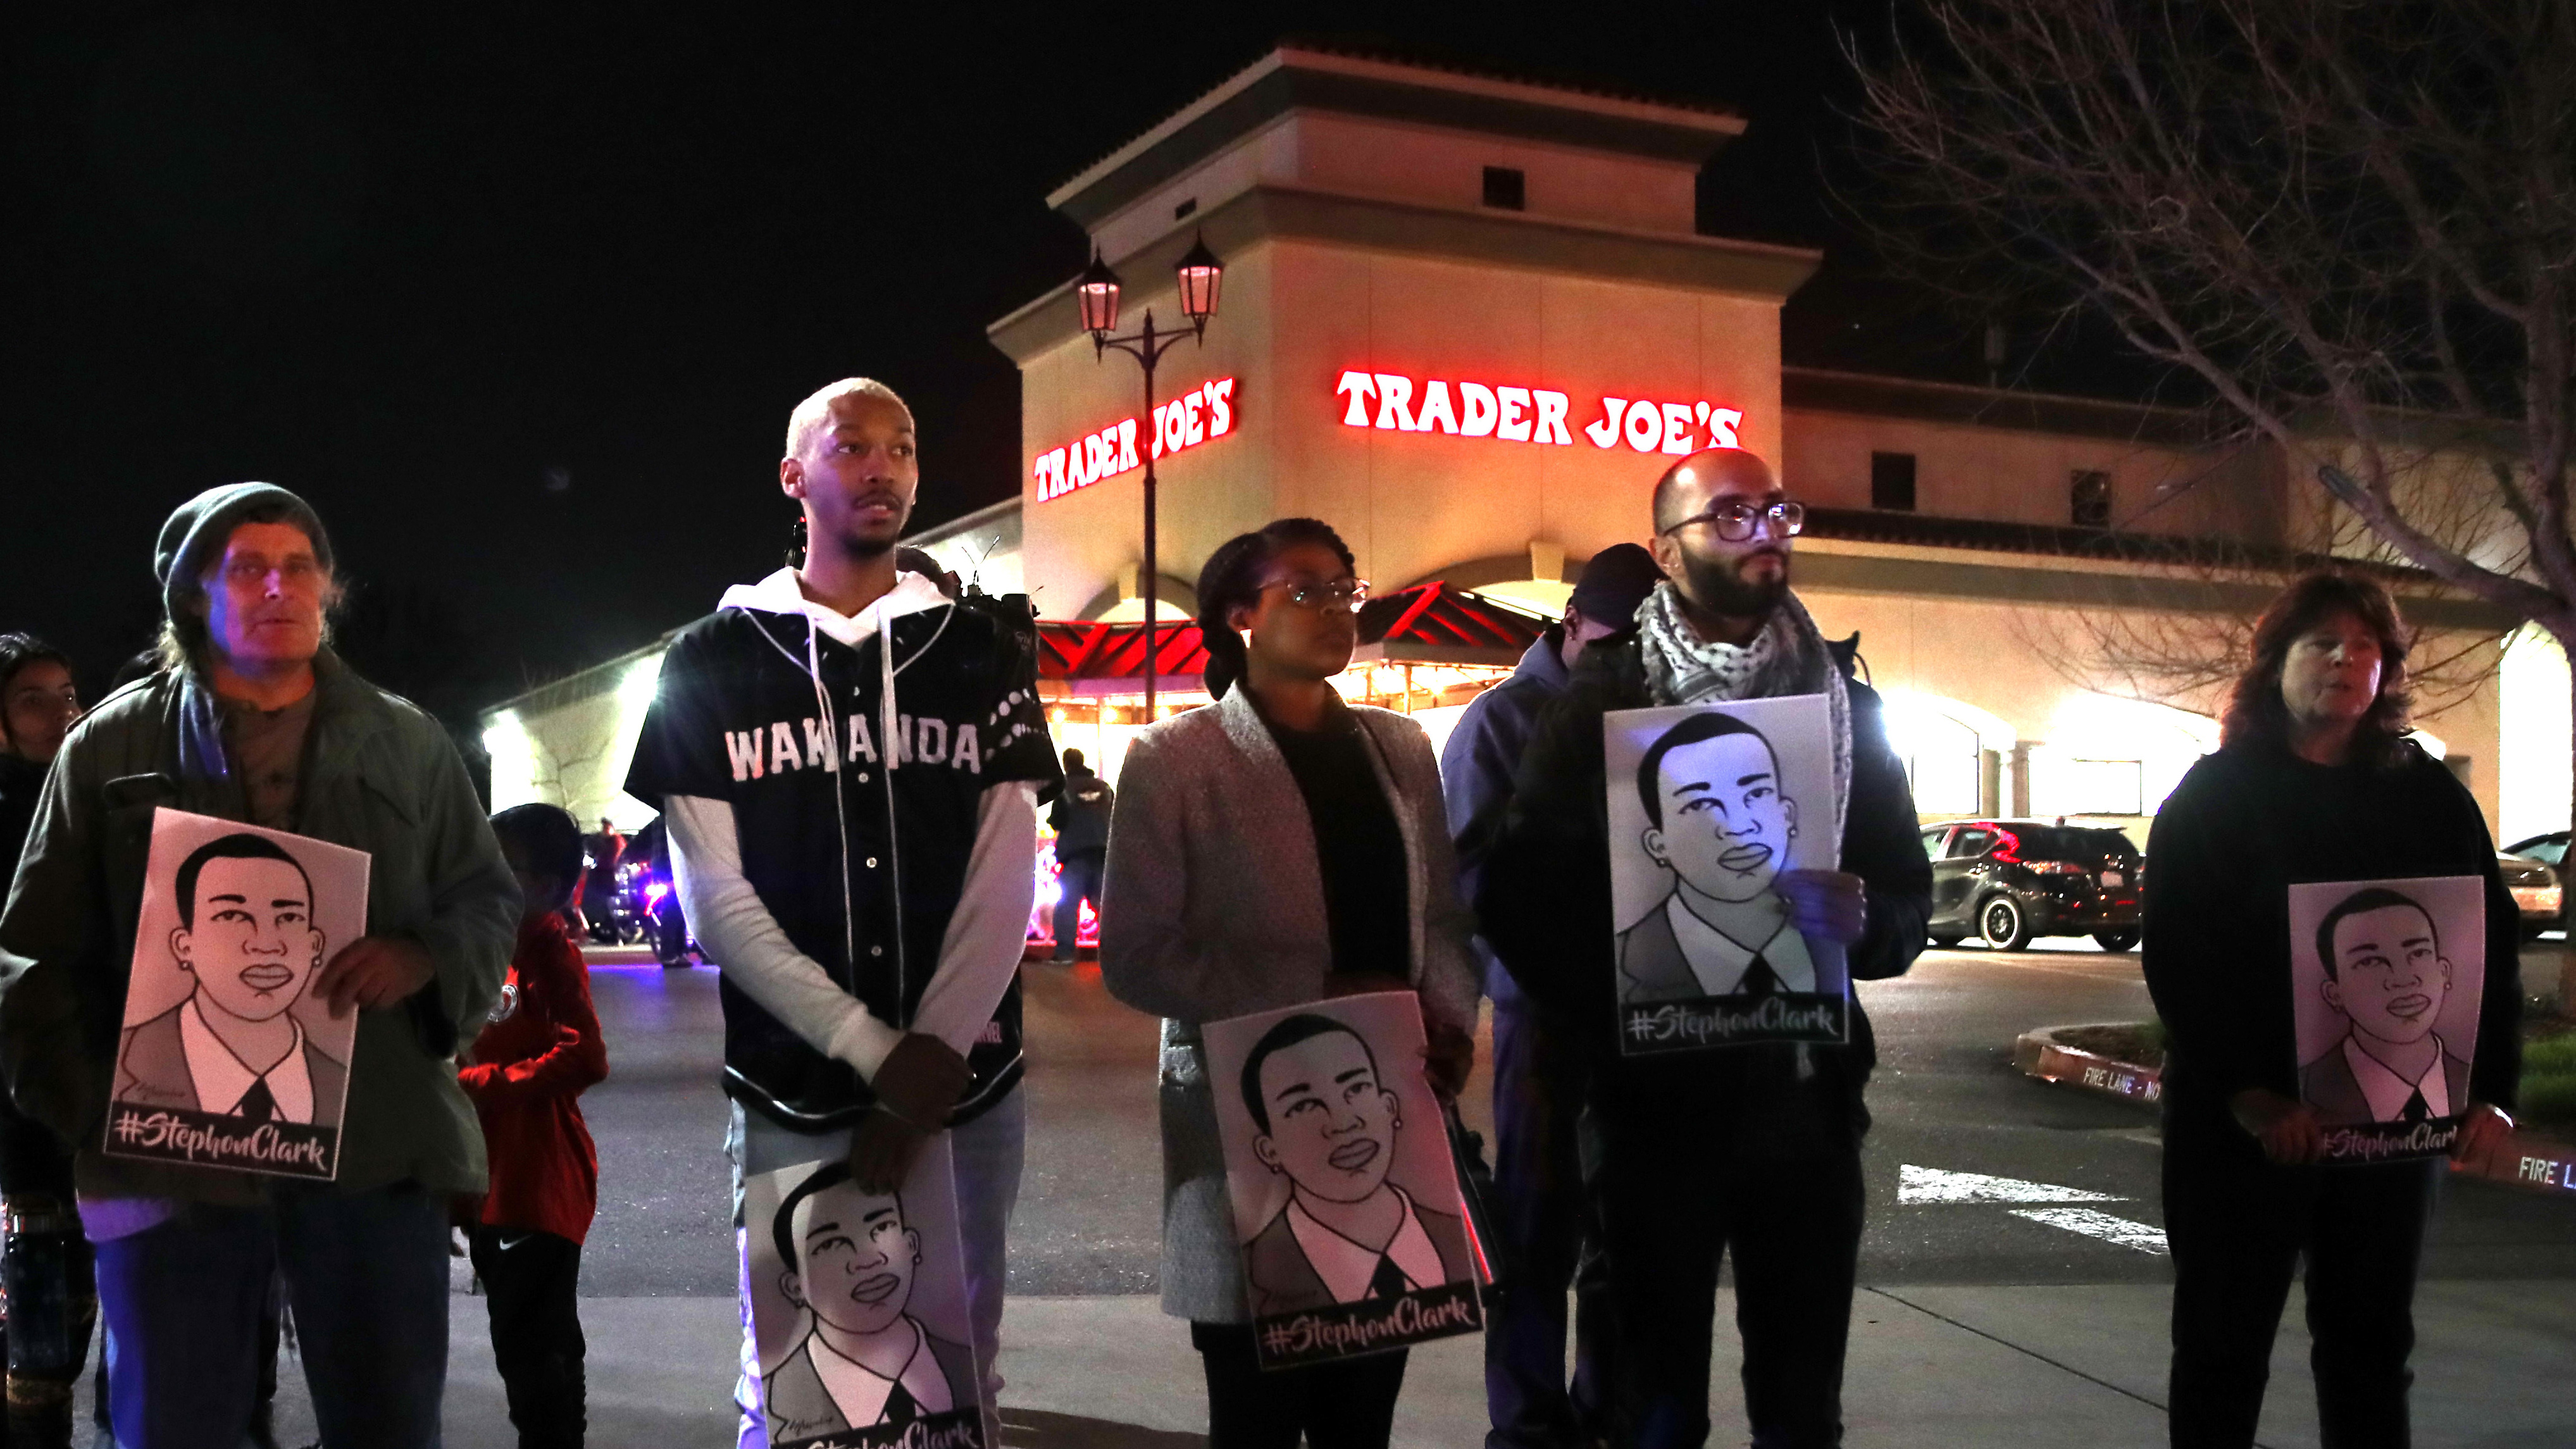 Demonstrators in California took to the East Sacramento streets on Monday to march in protest of the decision to not charge Sacramento police officers who shot and killed Stephon Clark last year.